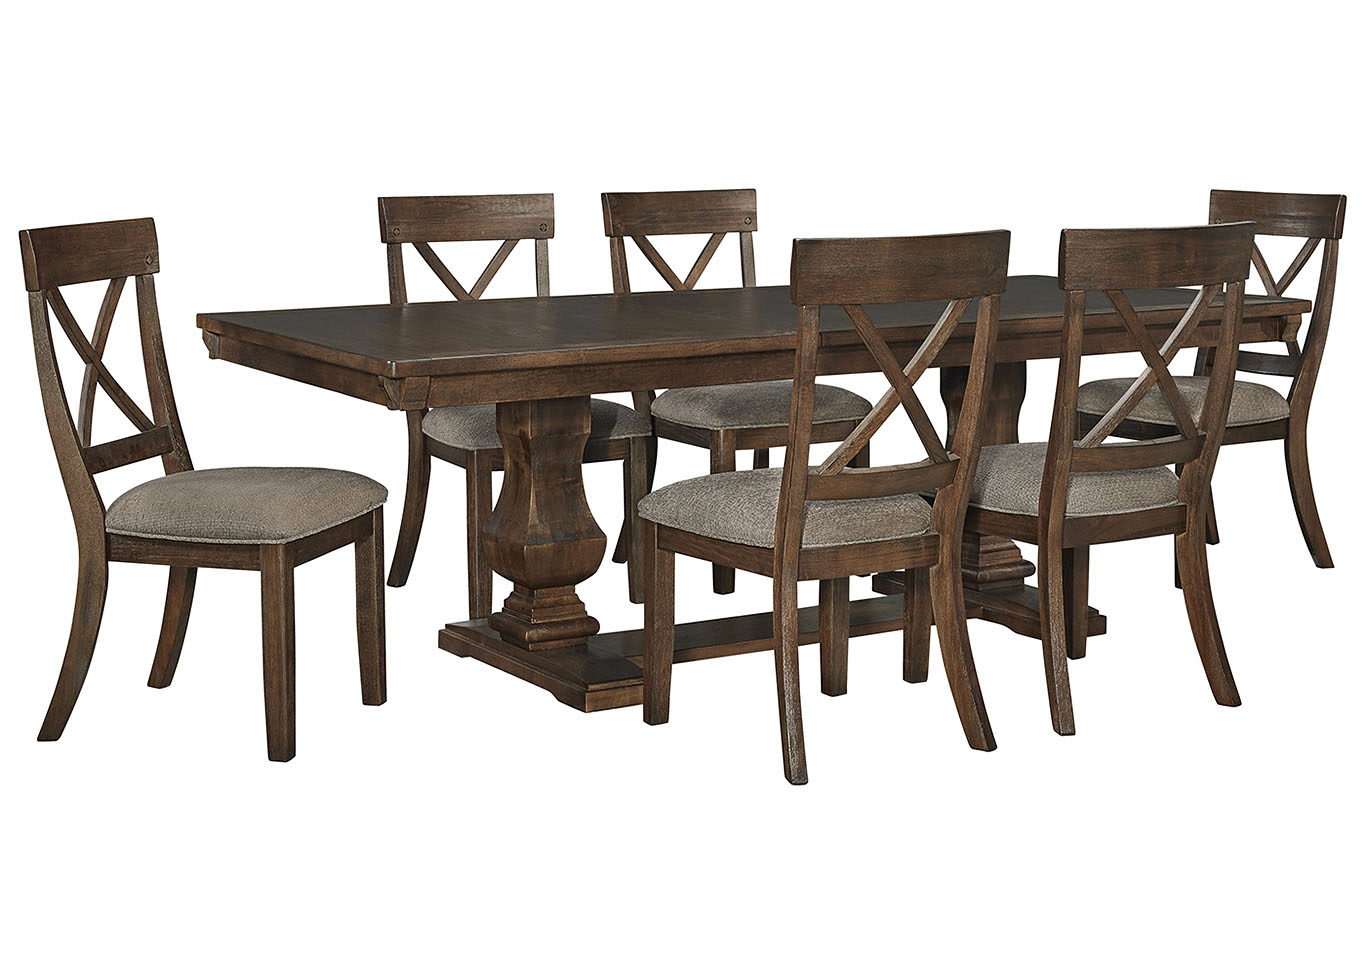 Windville Dining Table And 6 Chairs Ashley Furniture Homestore Independently Owned And Operated By Dash Square